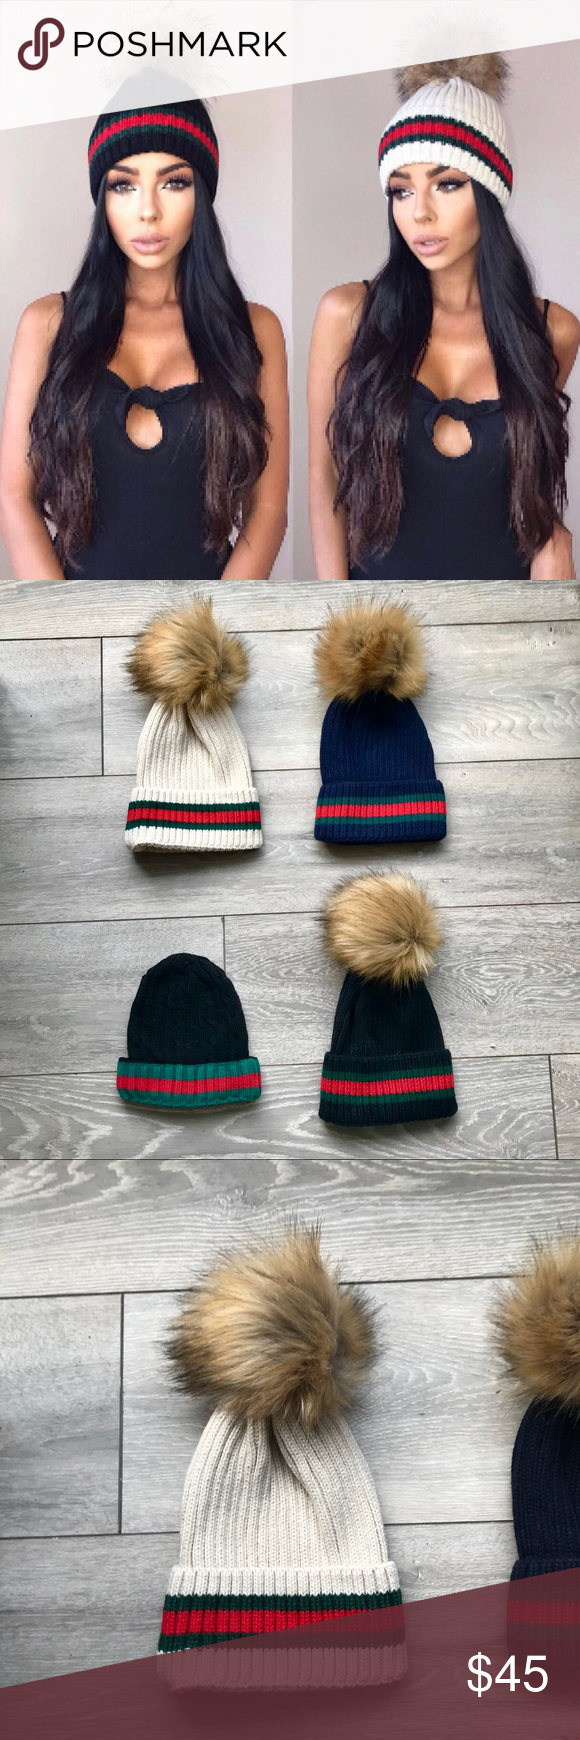 c0a2065c370 Striped beanie wool knit fur Pom hat NOT GUCCI beE This is a Green   Red